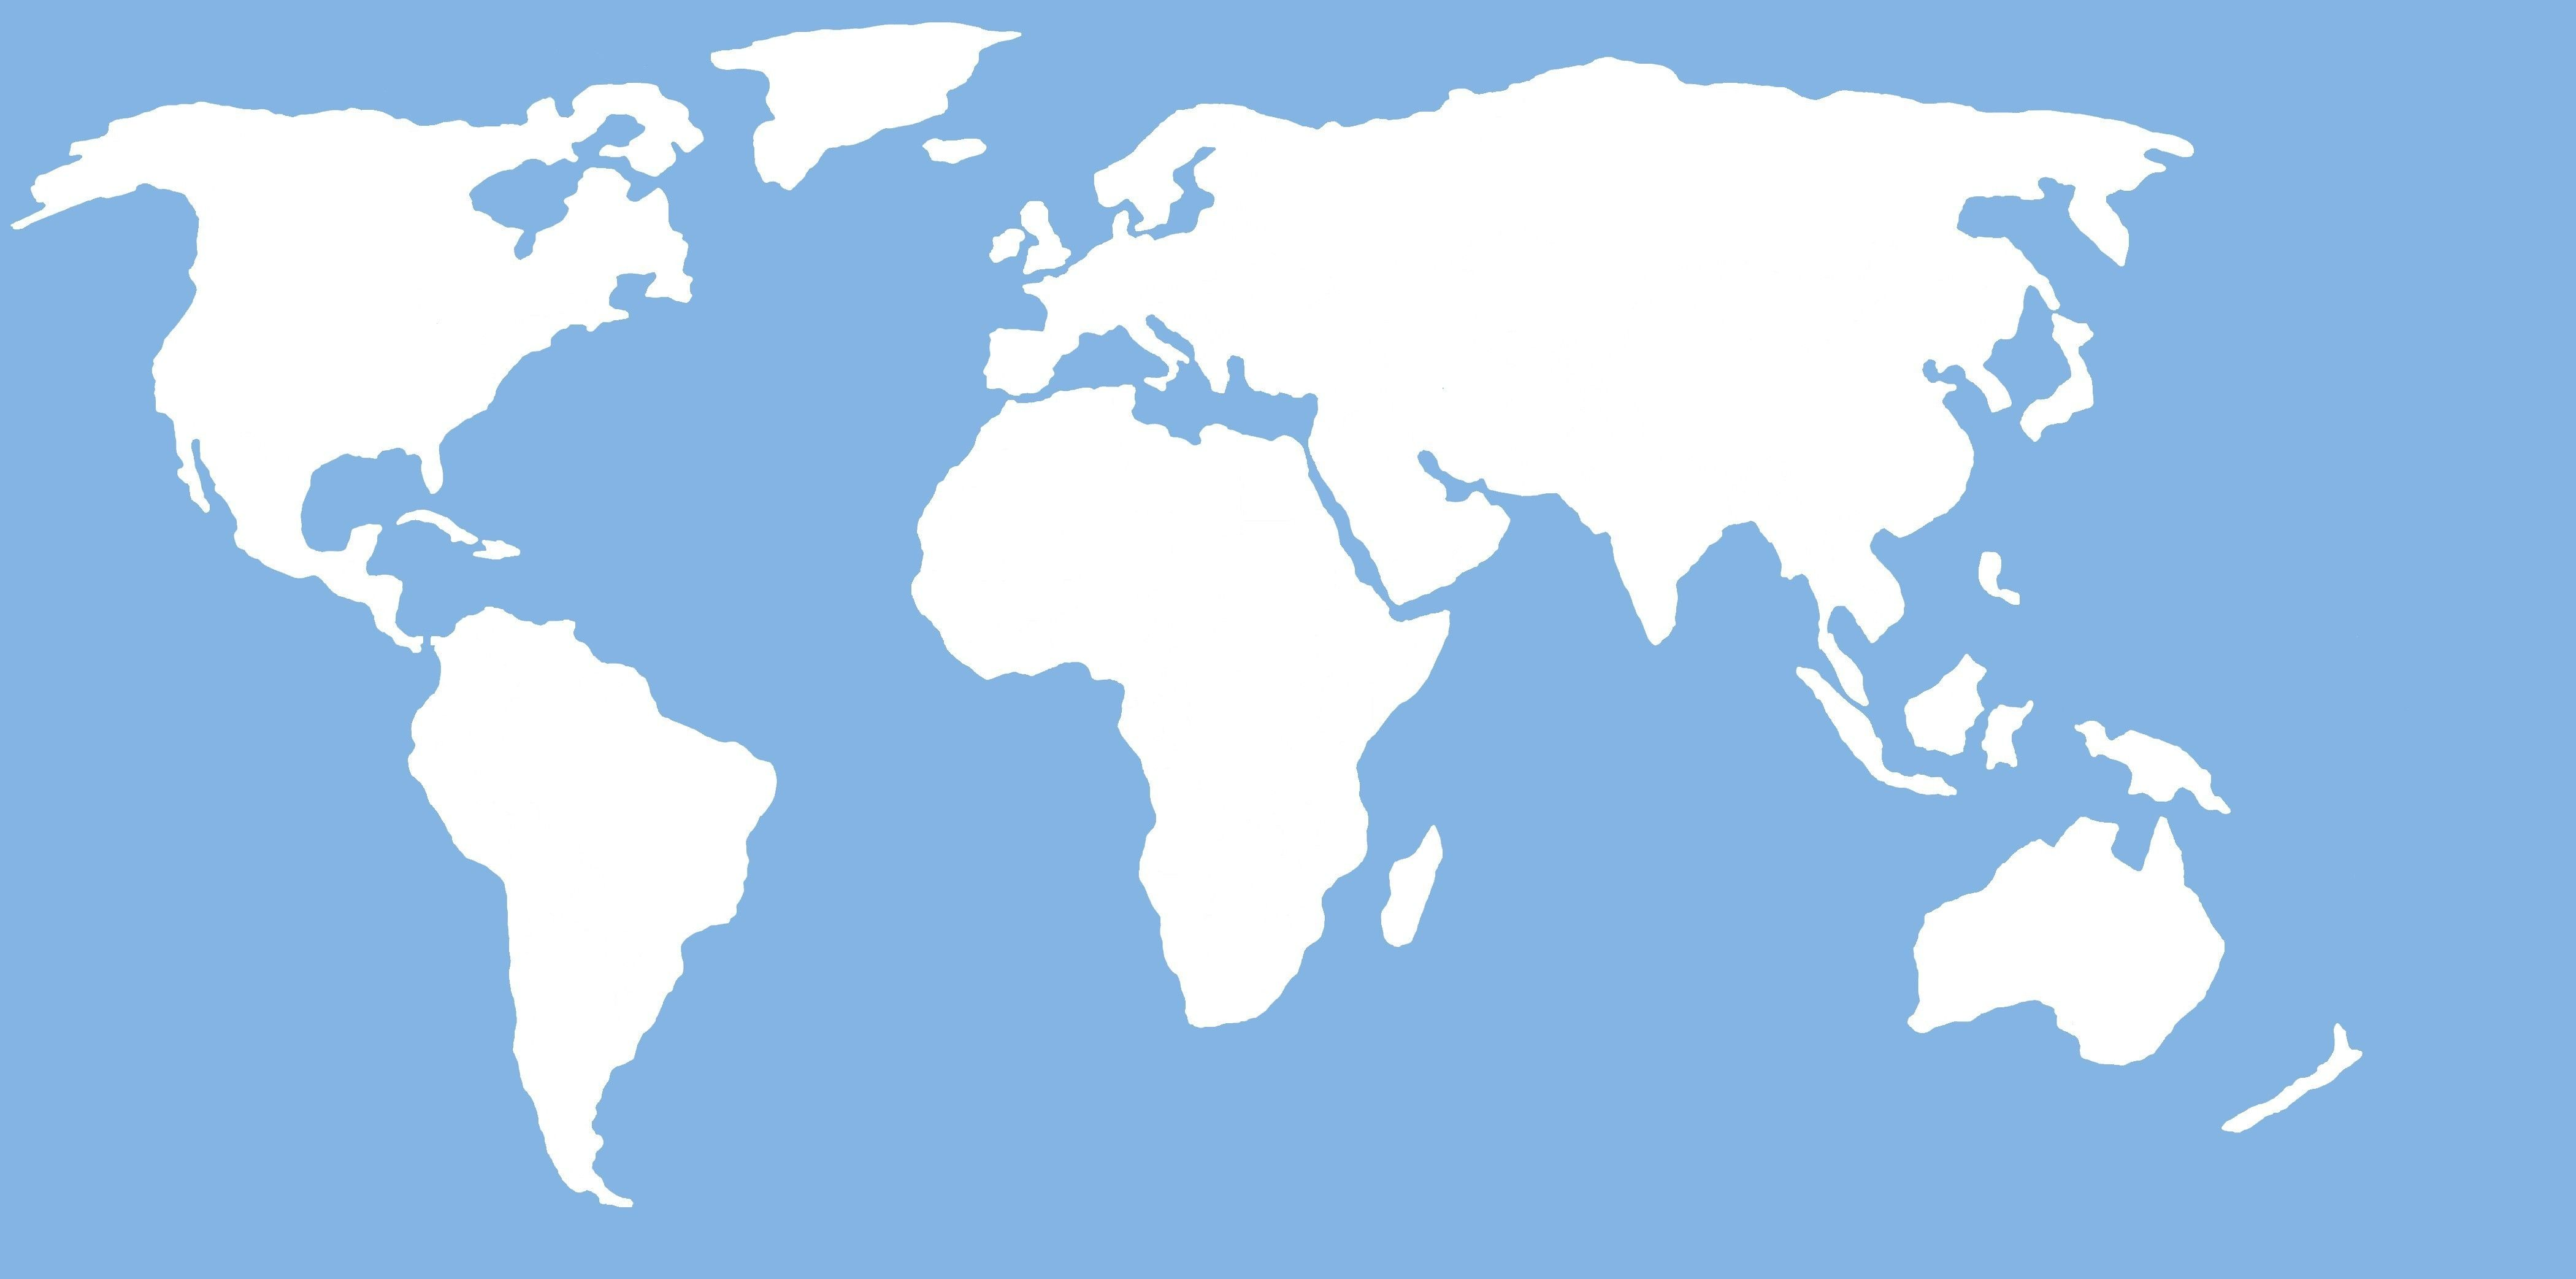 Simple World Map Outline Vector Fresh World Map Vector